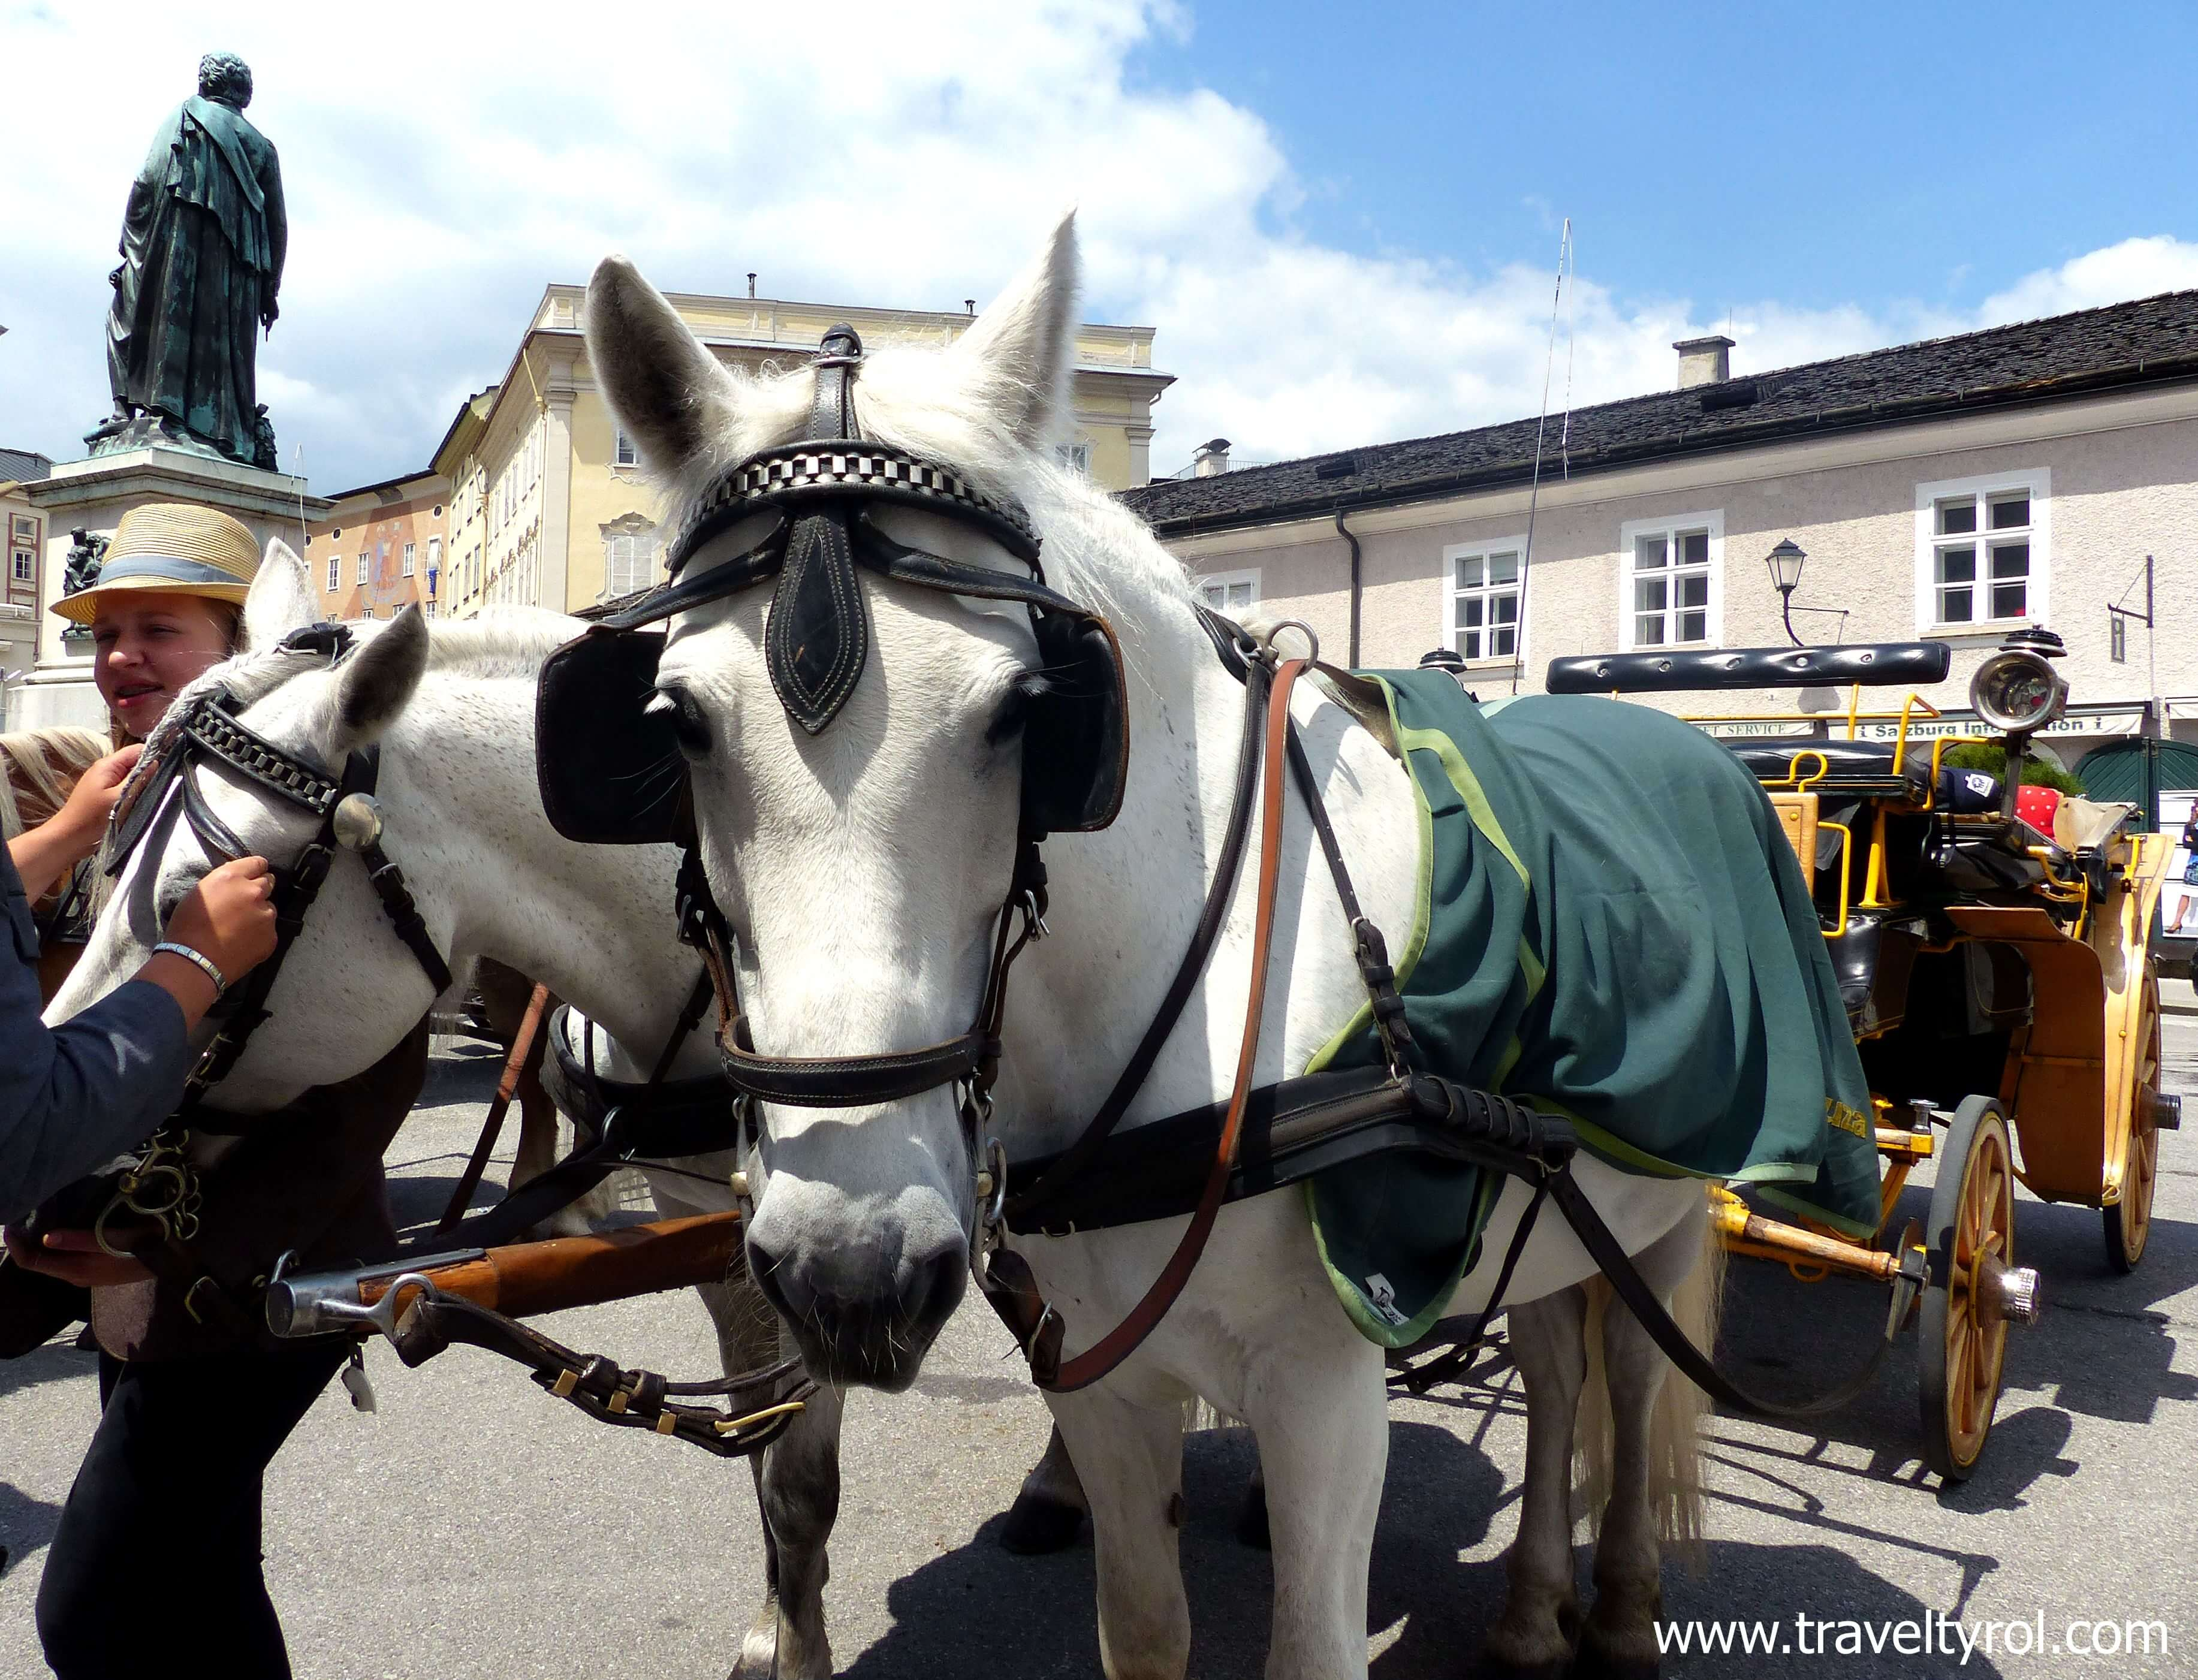 The tourist information office where you buy the Salzburg Card is on Mozart Square where the horse carriages depart from.